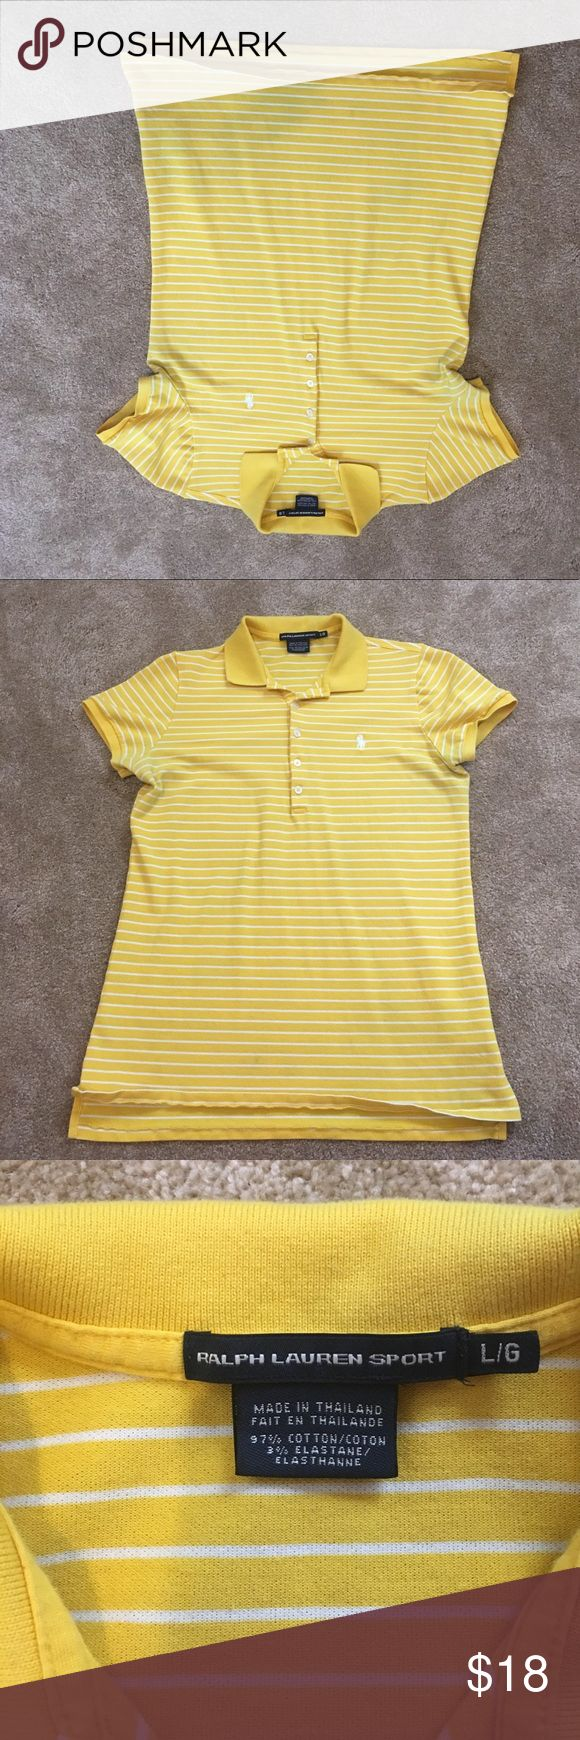 Ralph Lauren Sport yellow polo size L Gently used yellow Ralph Lauren Sport polo shirt in size large.  Polo is yellow and white stripped.  This is a slim fitting shirt. *any offer will be considered* willing to bundle ralph lauren sport Tops Tees - Short Sleeve